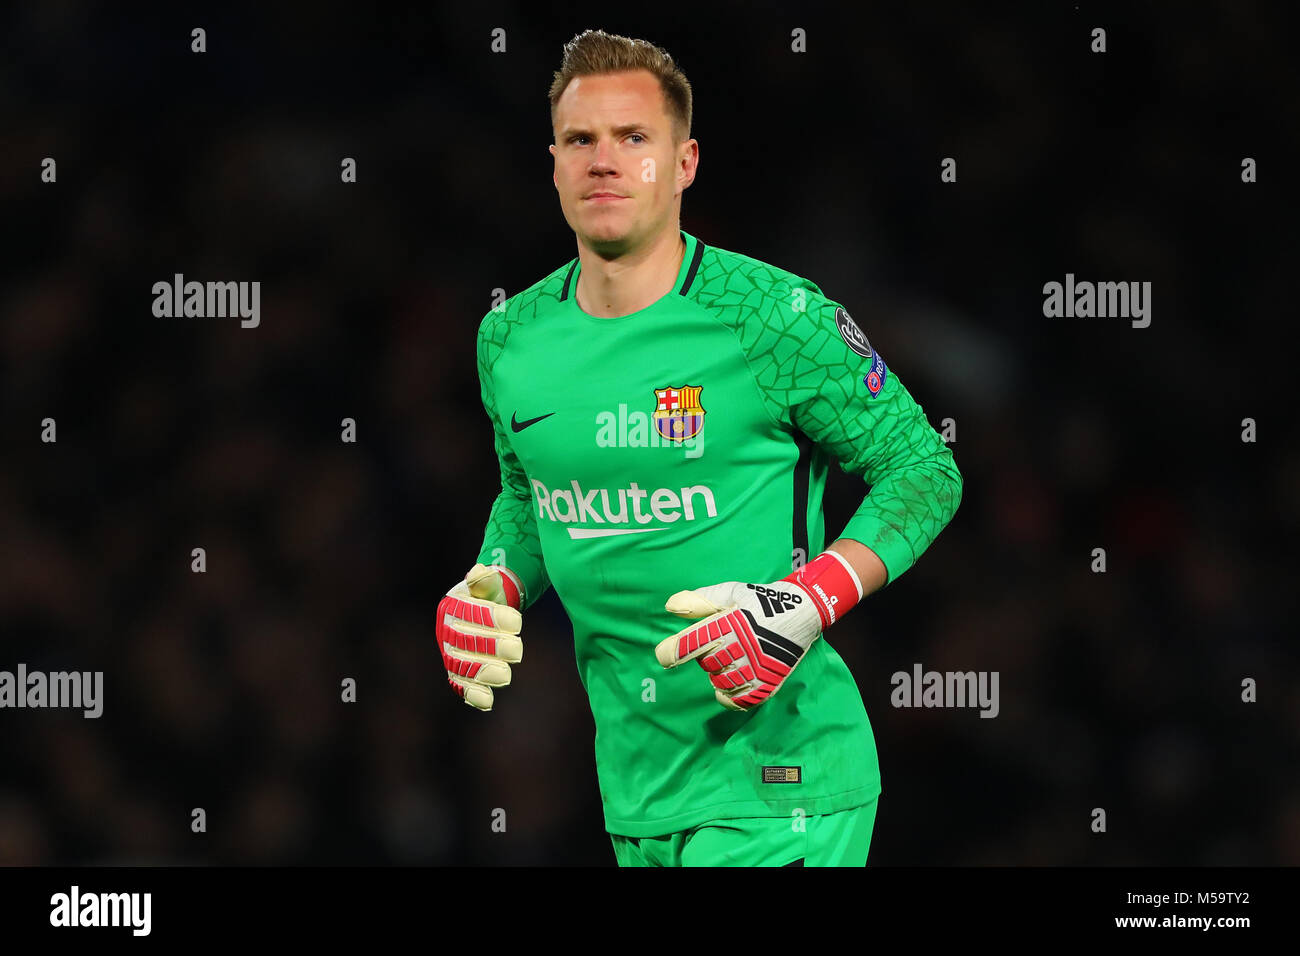 f84a02f6878 Marc Andre Ter Stegen Of Fc Barcelona Stock Photos   Marc Andre Ter ...